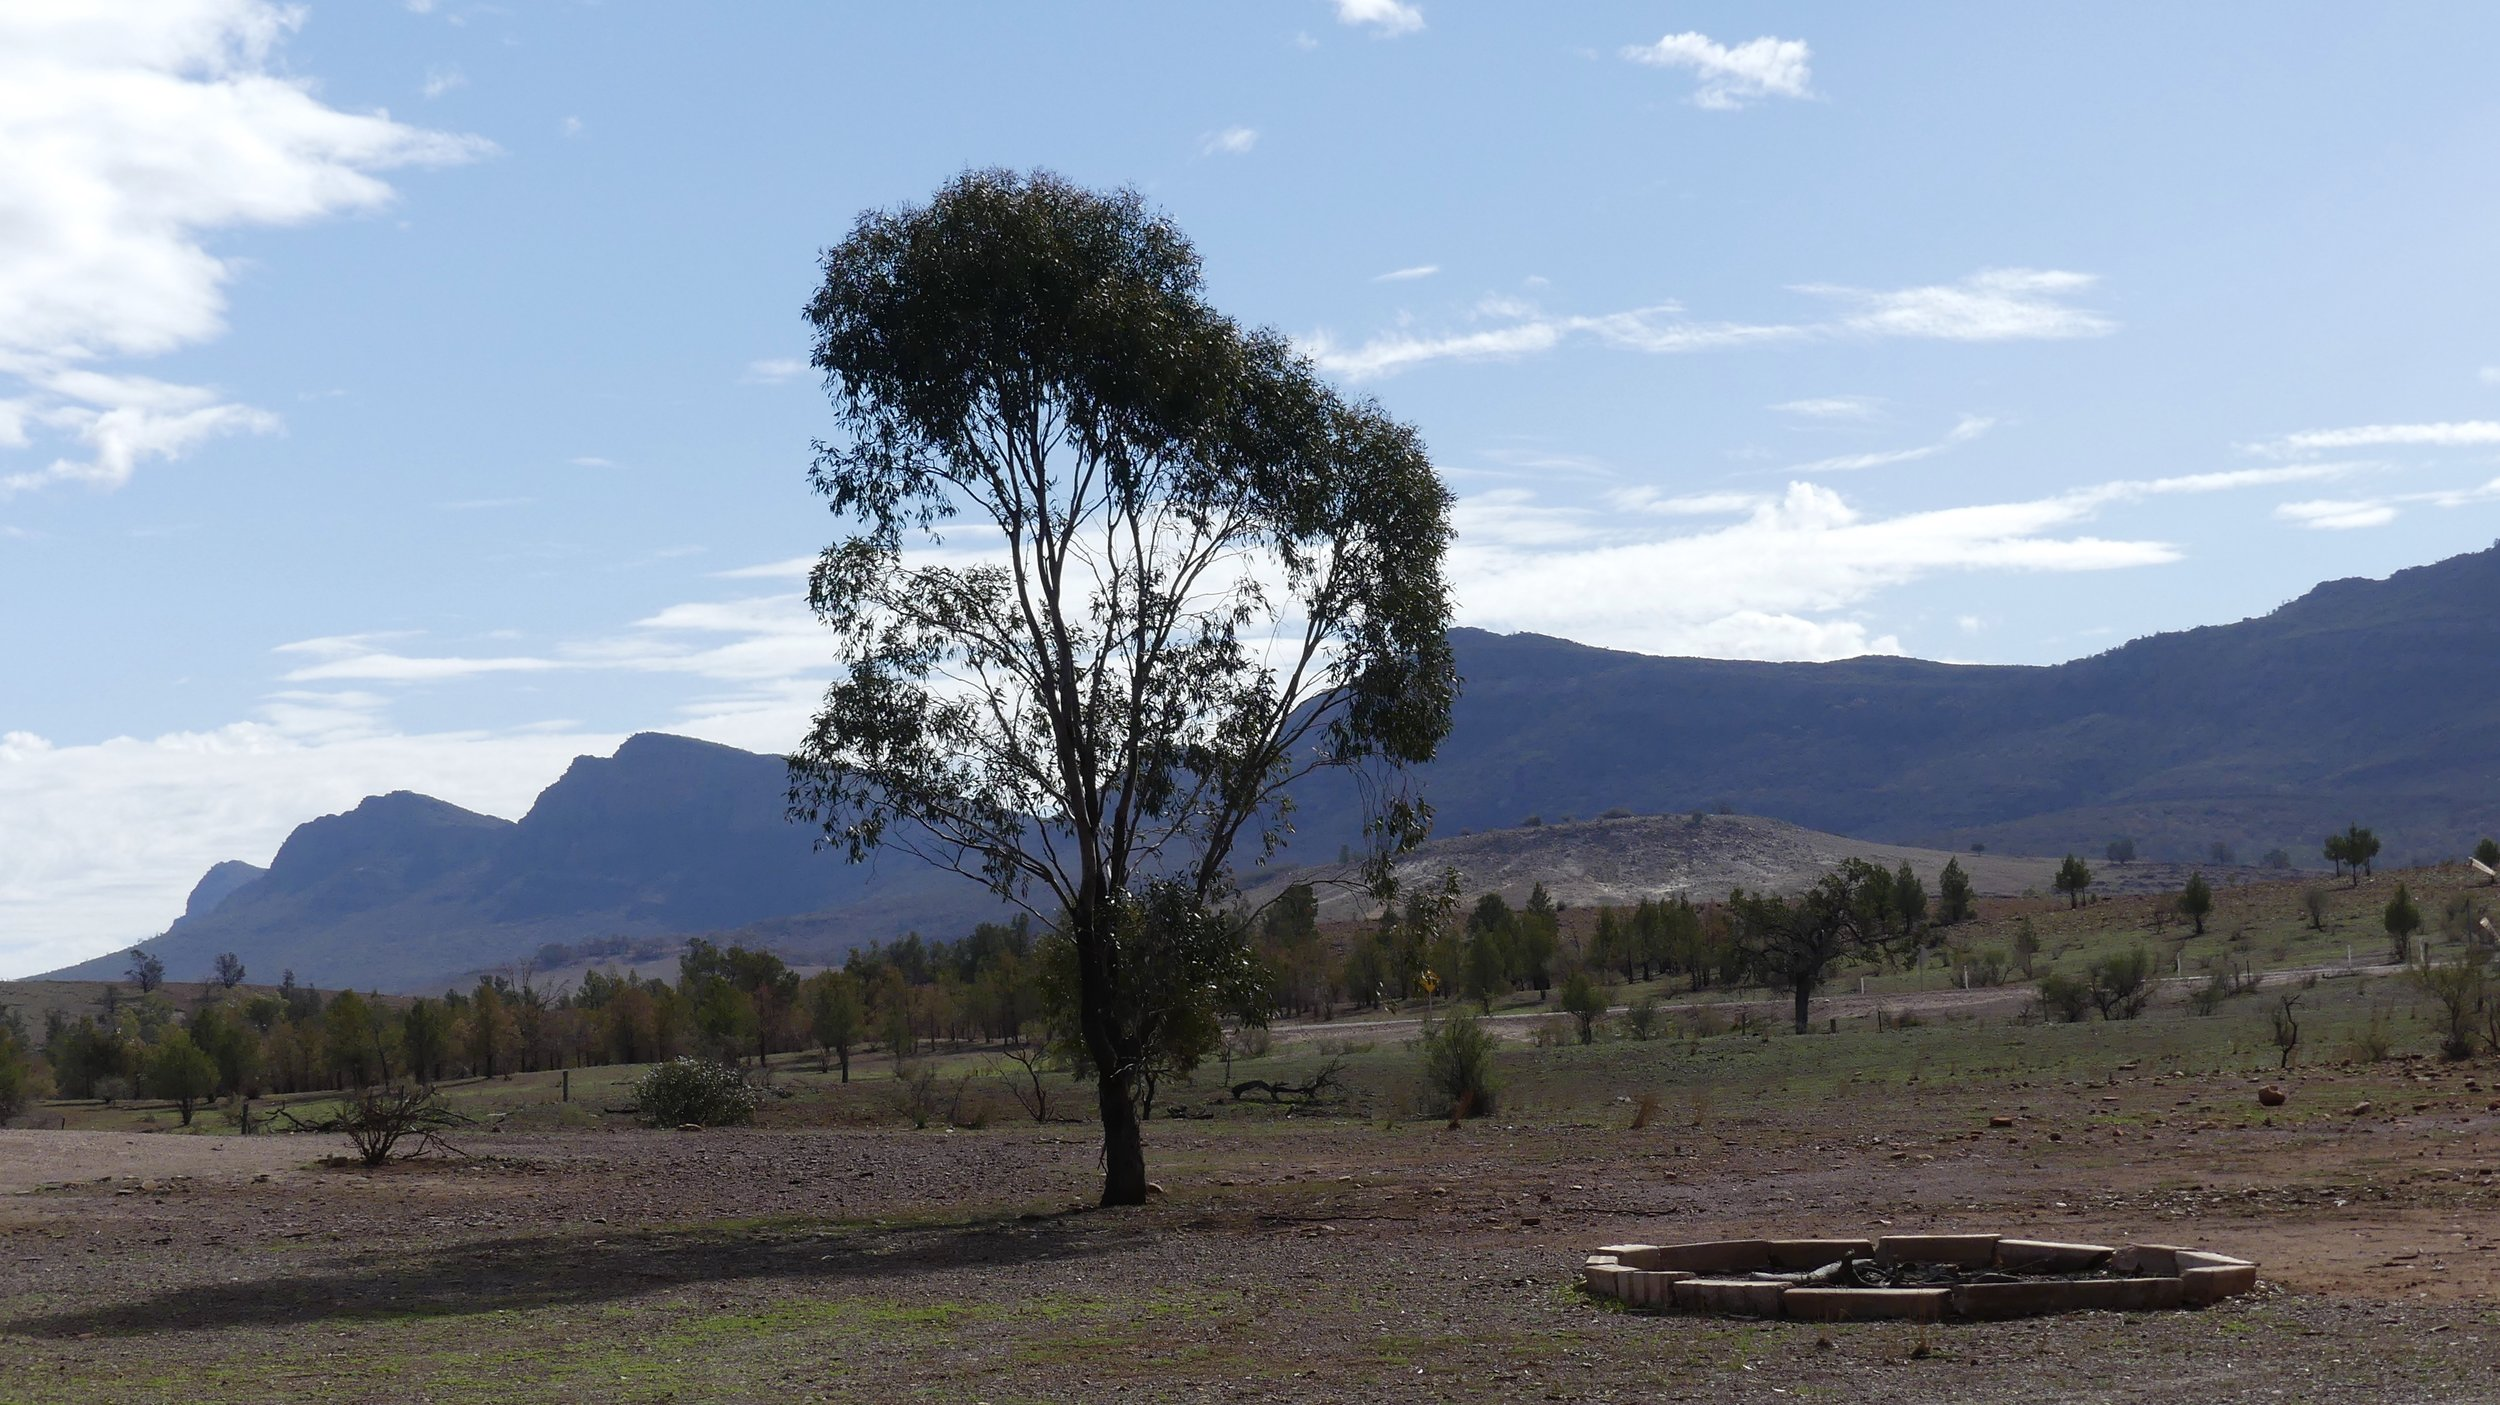 The western flank of Wilpena Pound